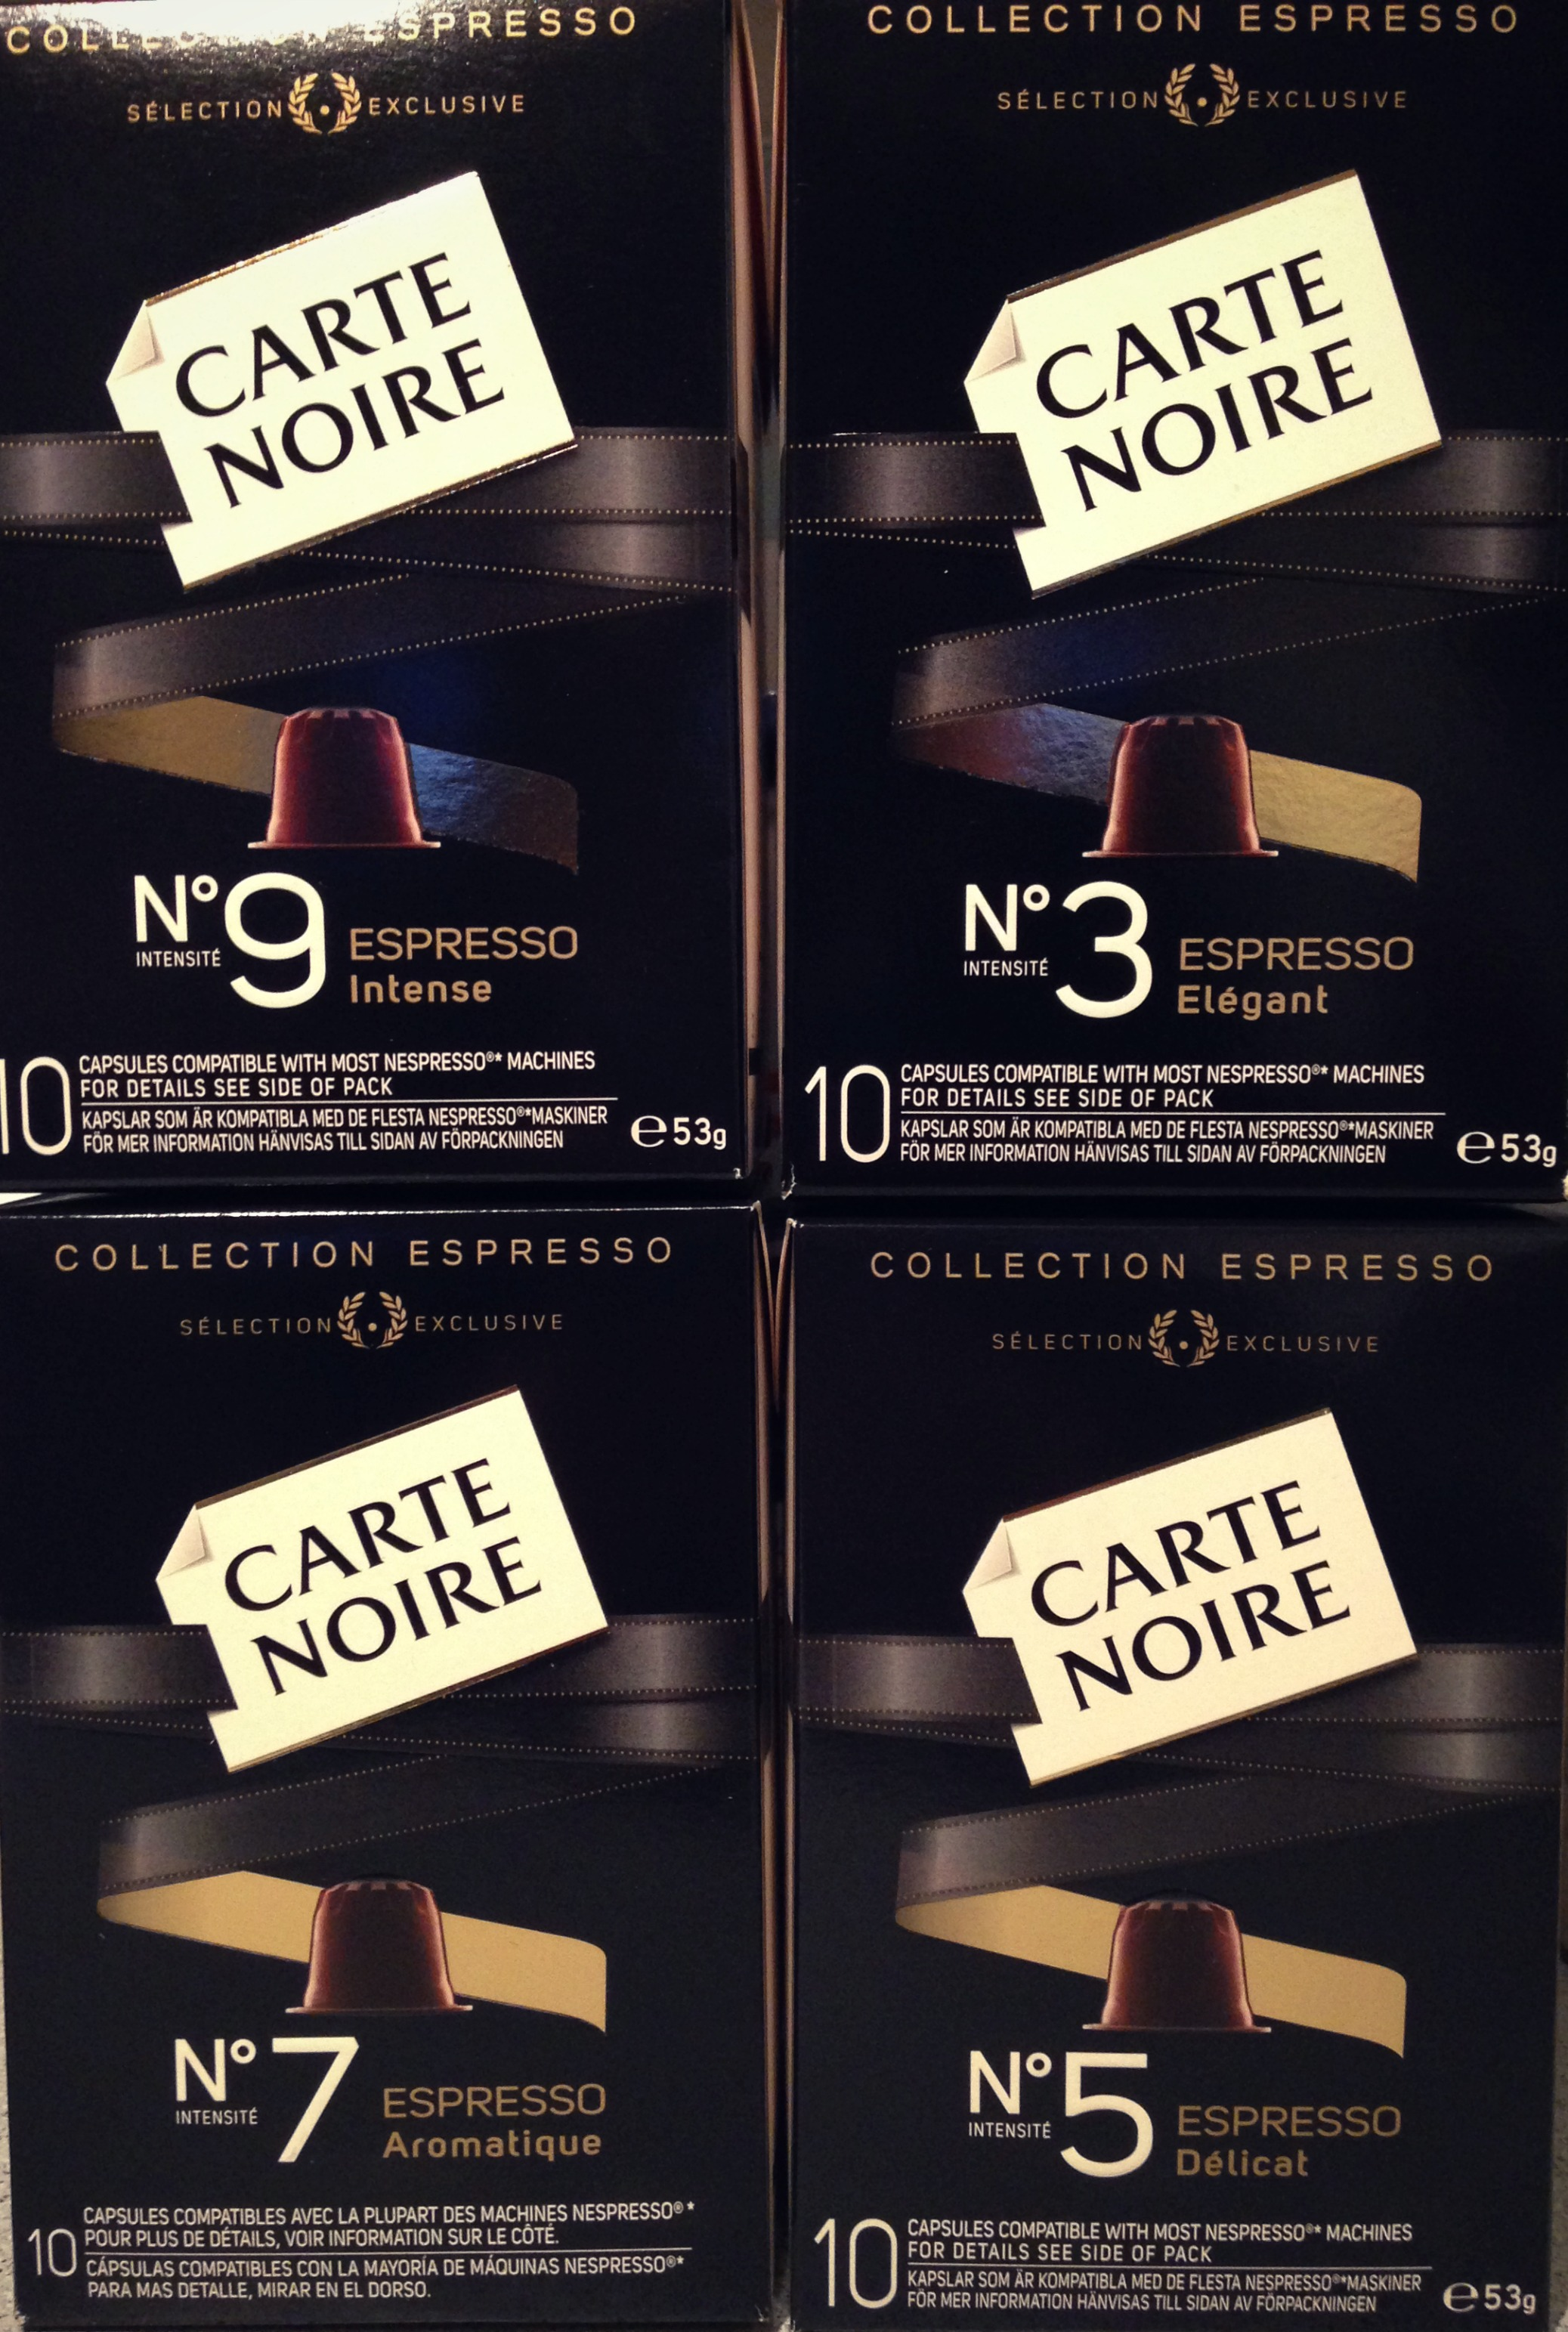 carte noire espresso collection